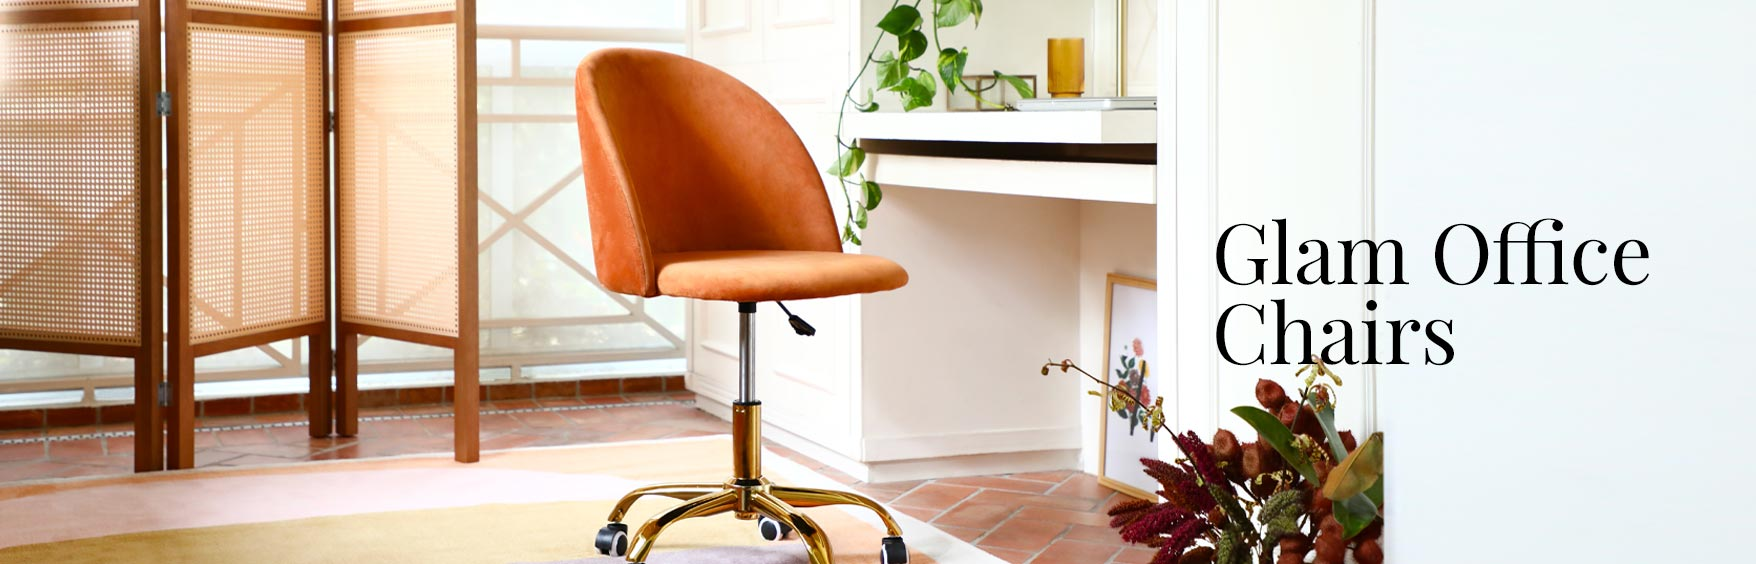 <Glam Office Chairs | WestwingNow>